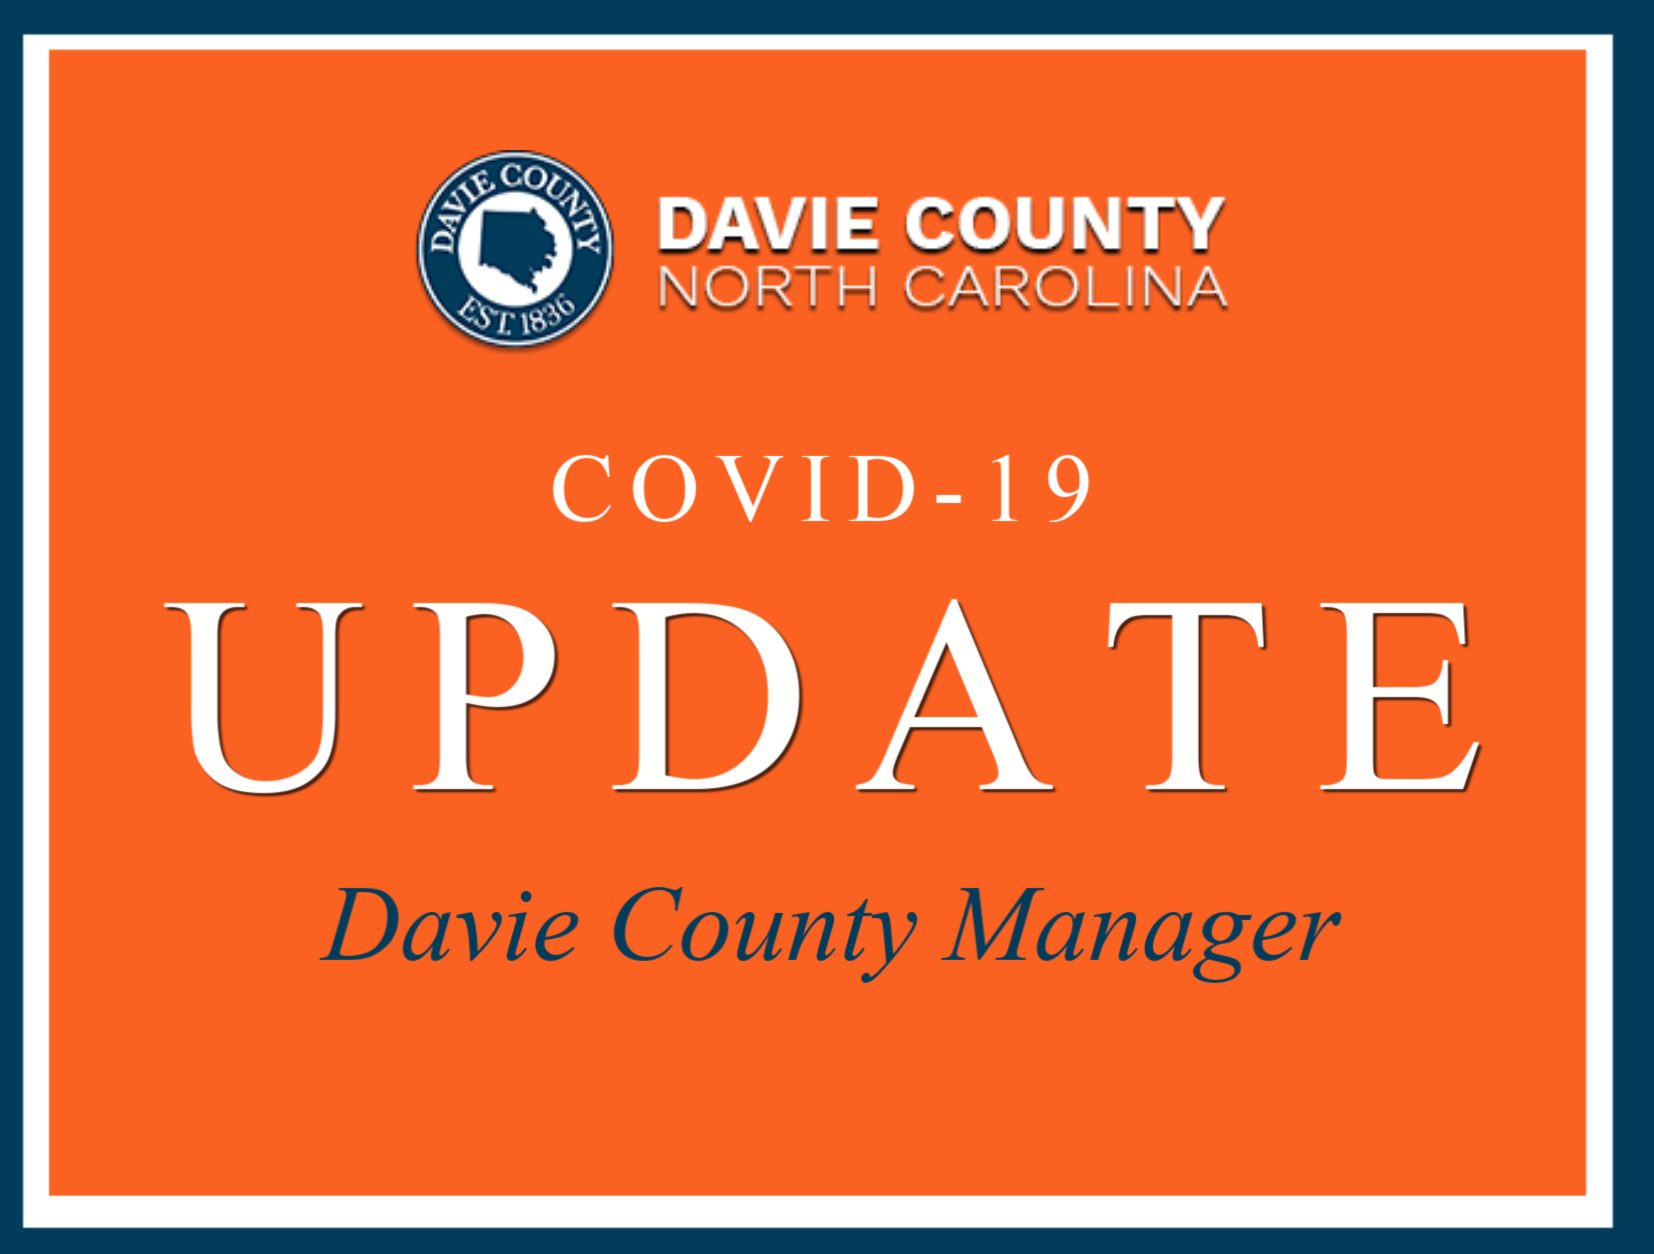 Amending the State of Emergency Declaration due to Davie resident testing positive for COVID-19